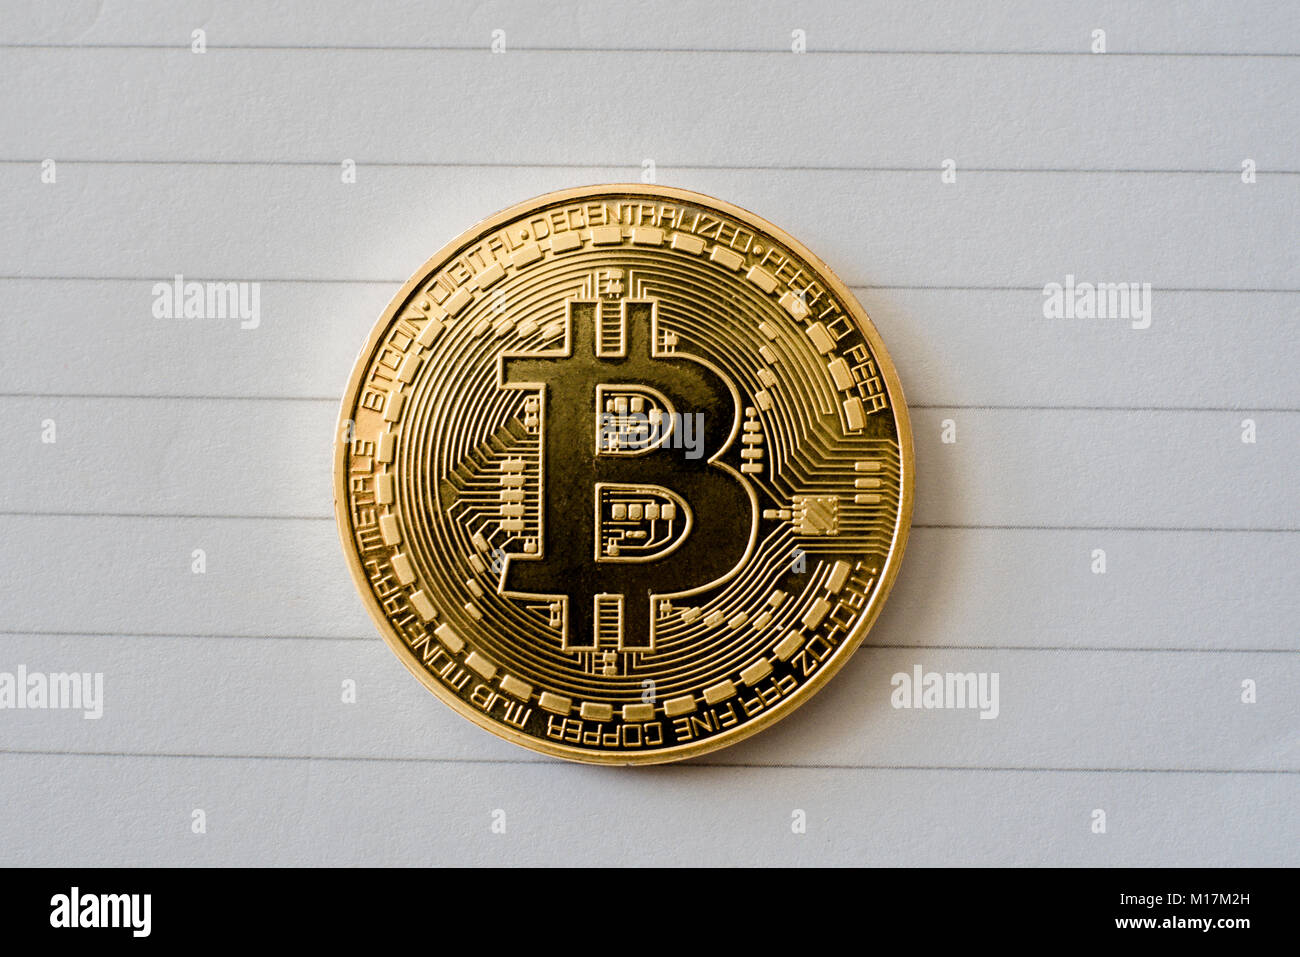 Mint coin crypto currency stocks betbright 20 risk free betting